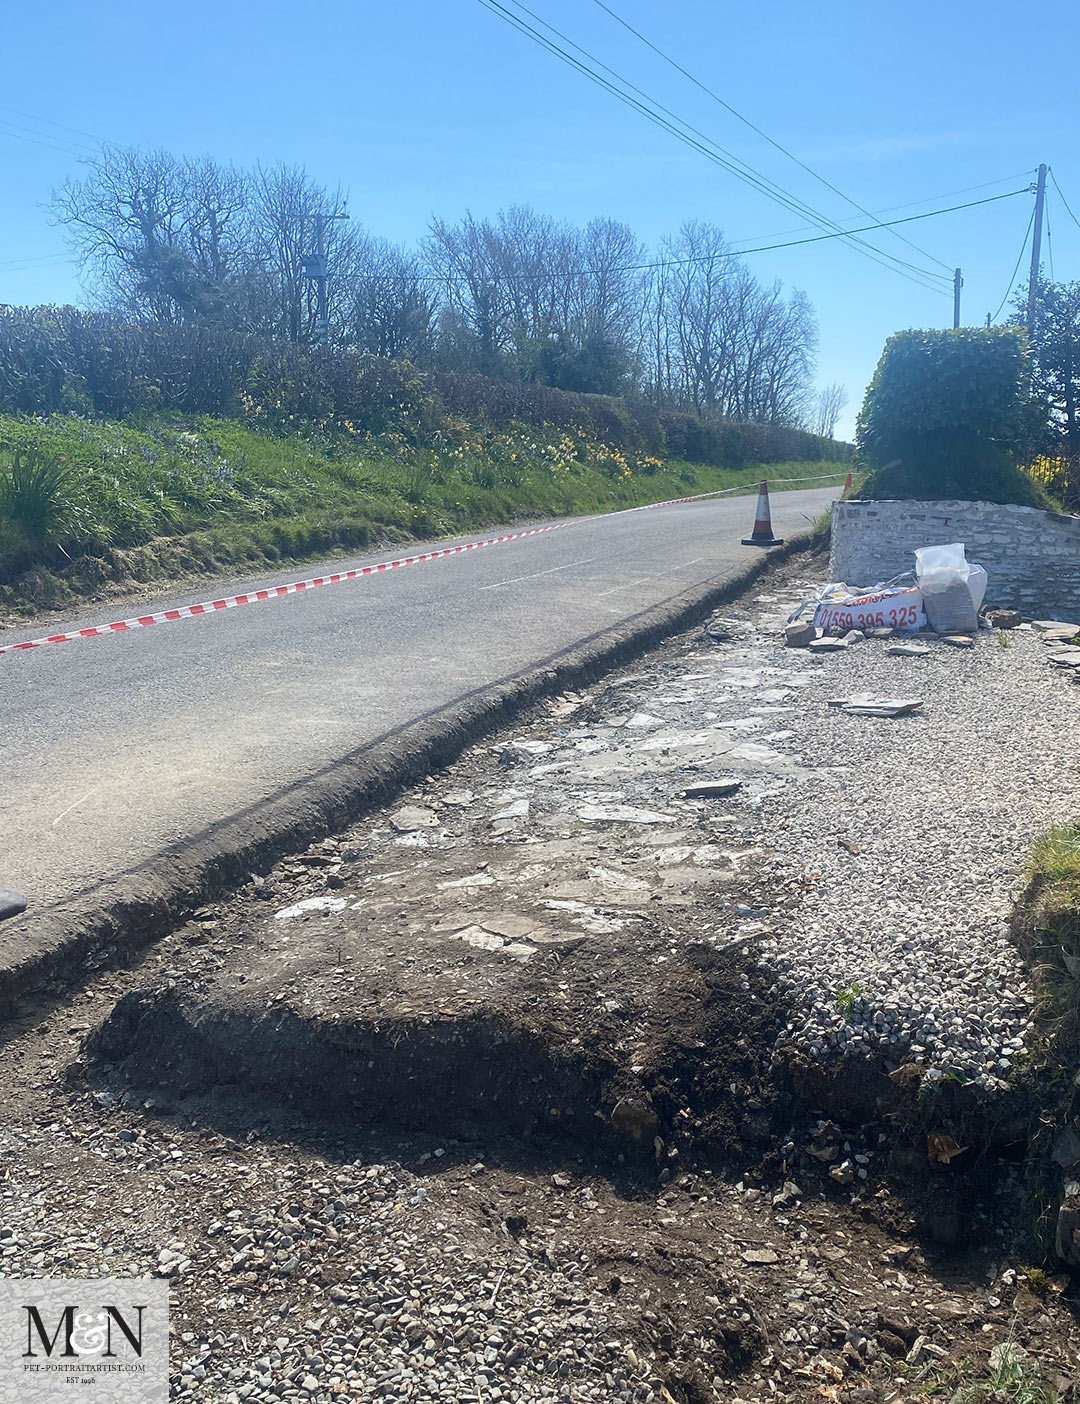 The kerbs to be laid soon!